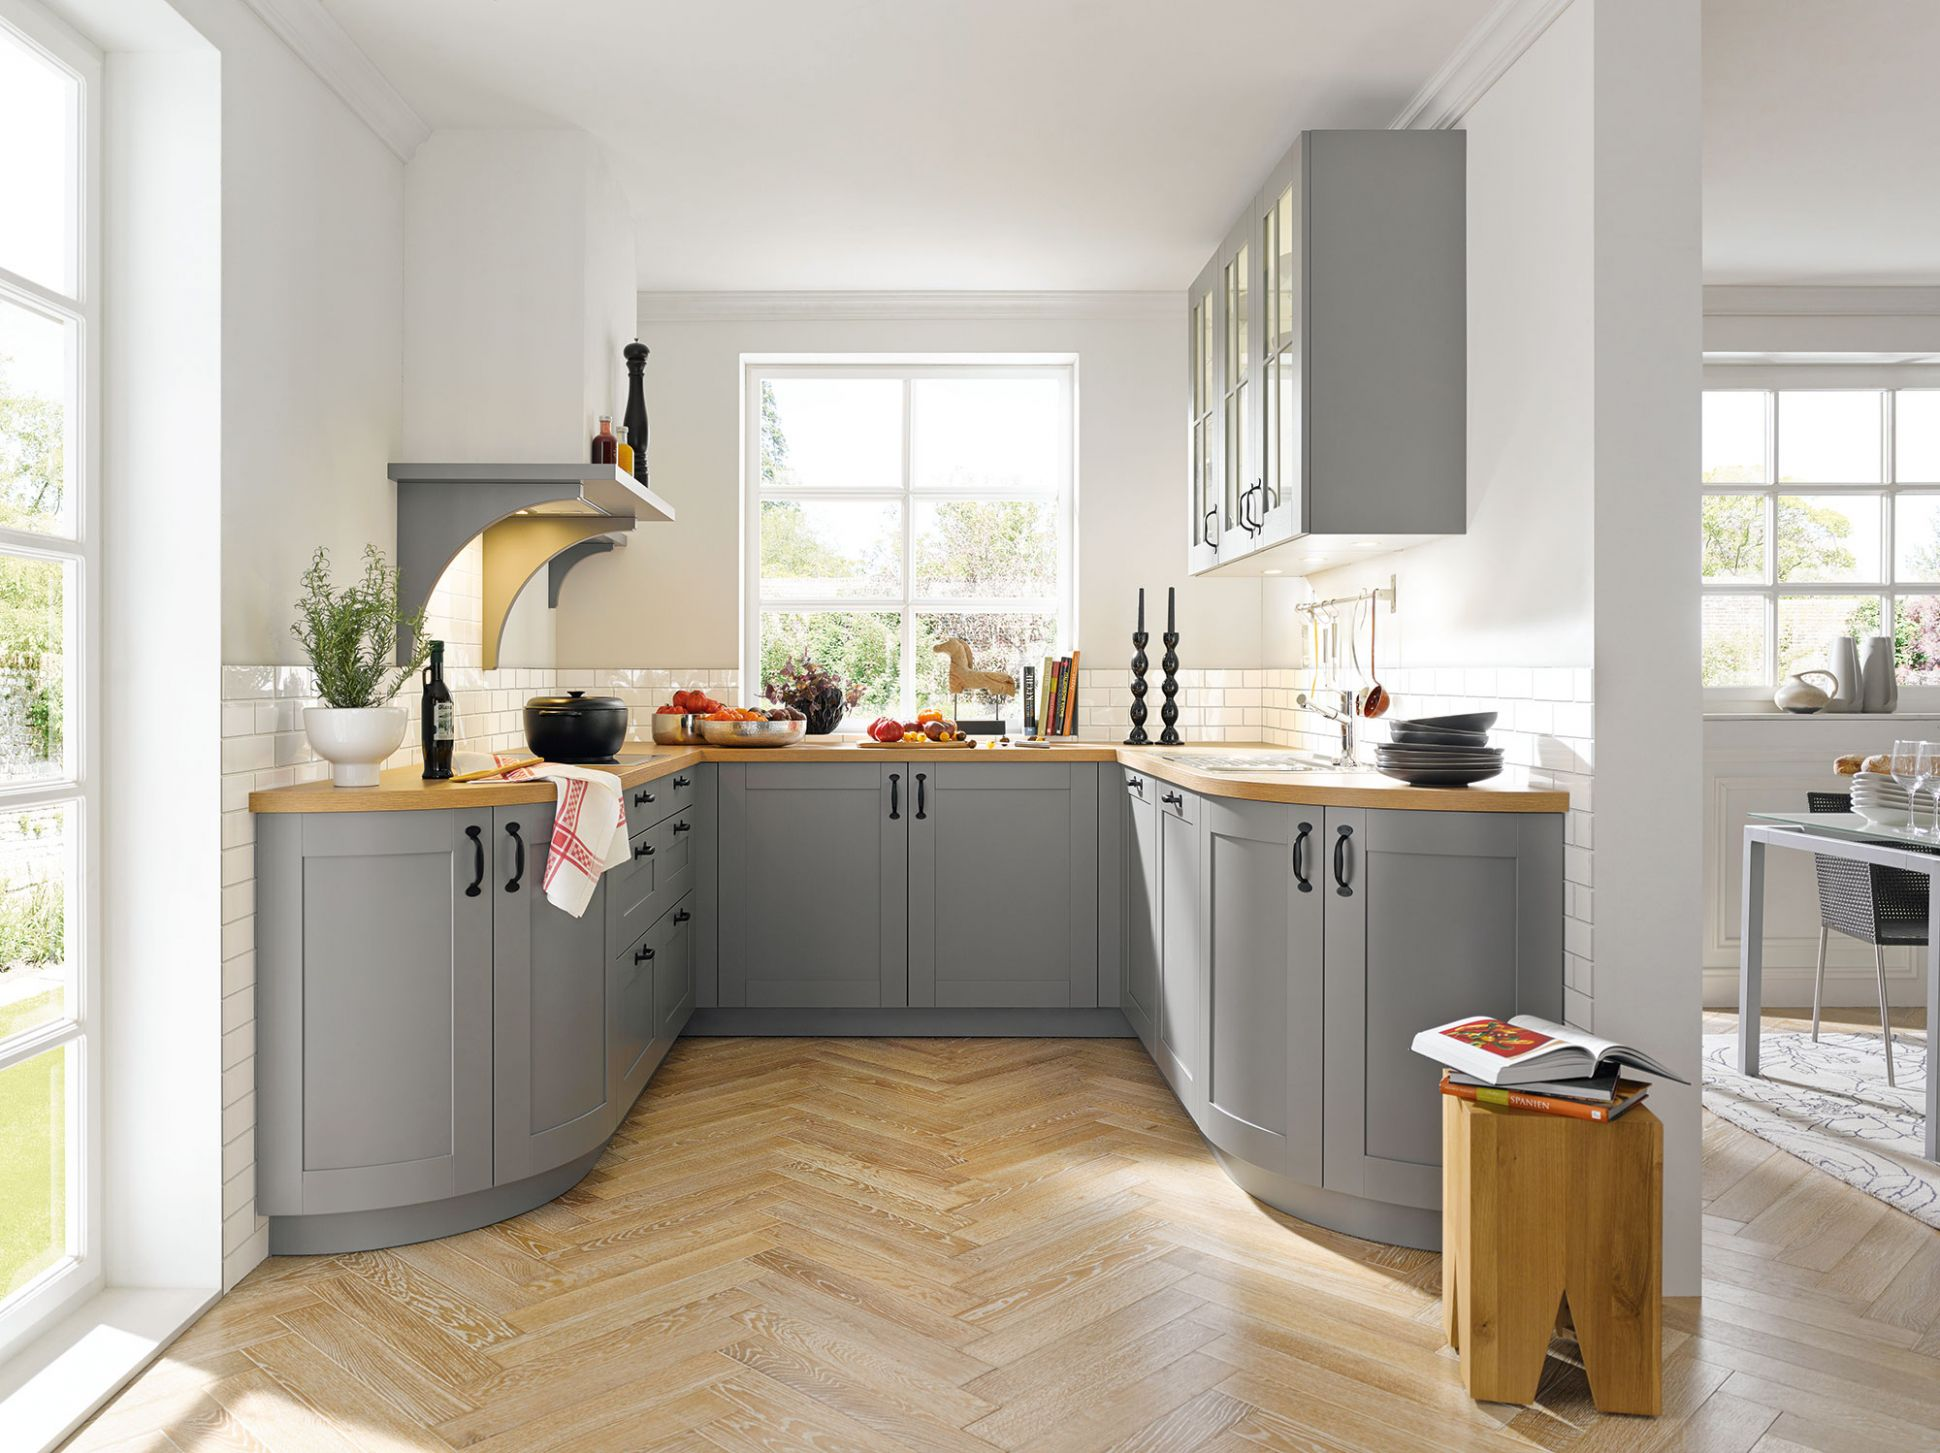 11 Shaker Kitchen Images (Inspiring Shaker Kitchen Ideas) | Photo ..